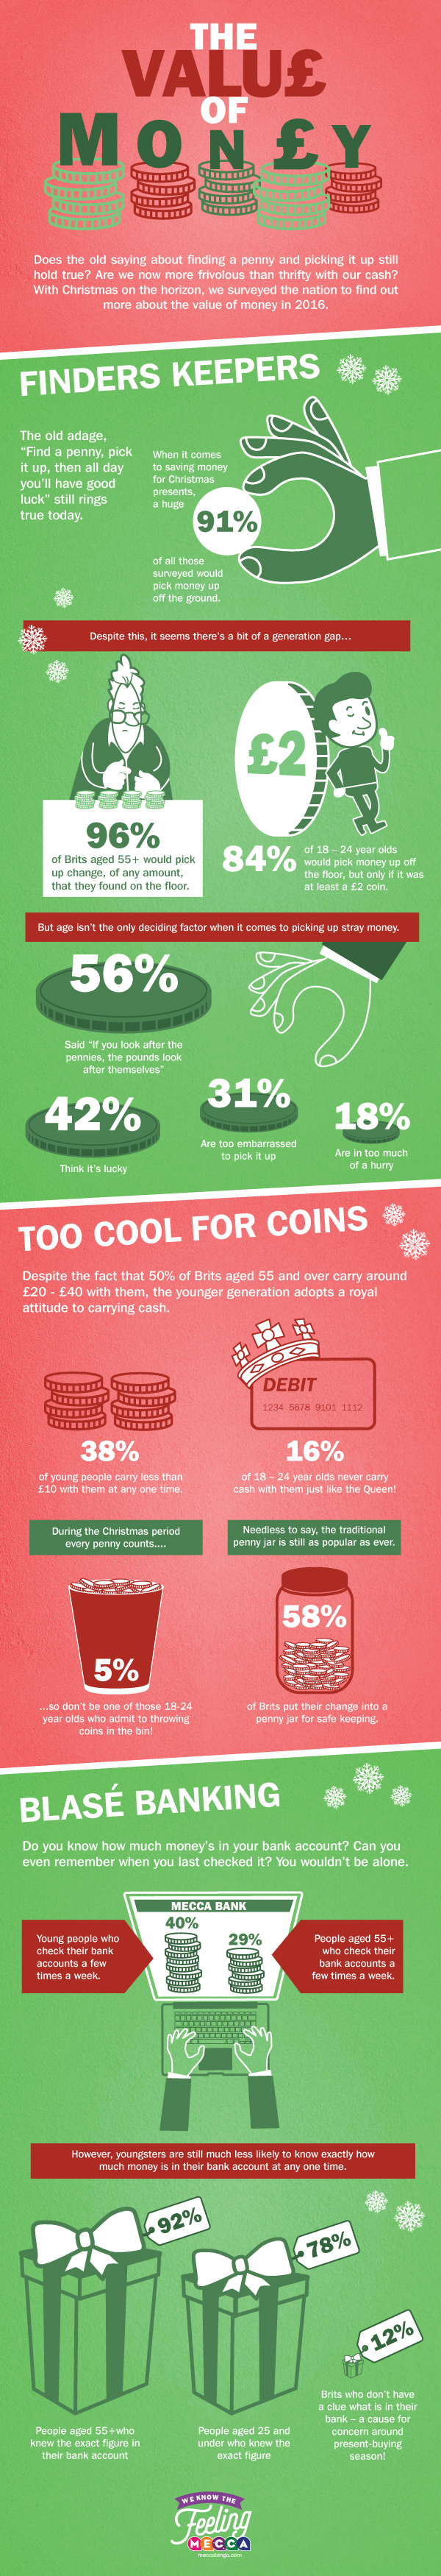 Infographic : The Value of Money